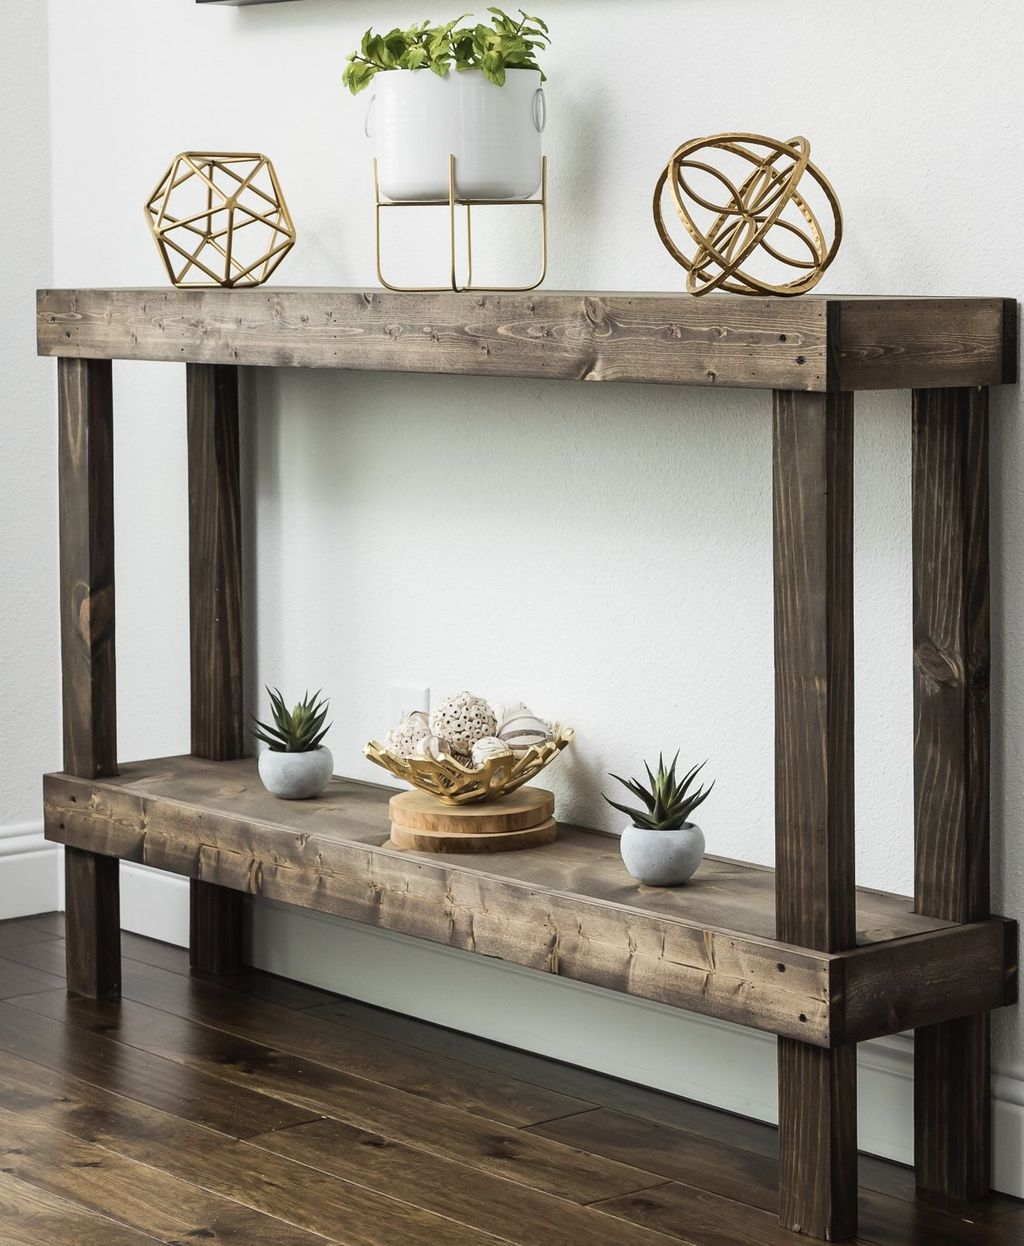 Stylish Console Table Design Ideas You Must Have 35